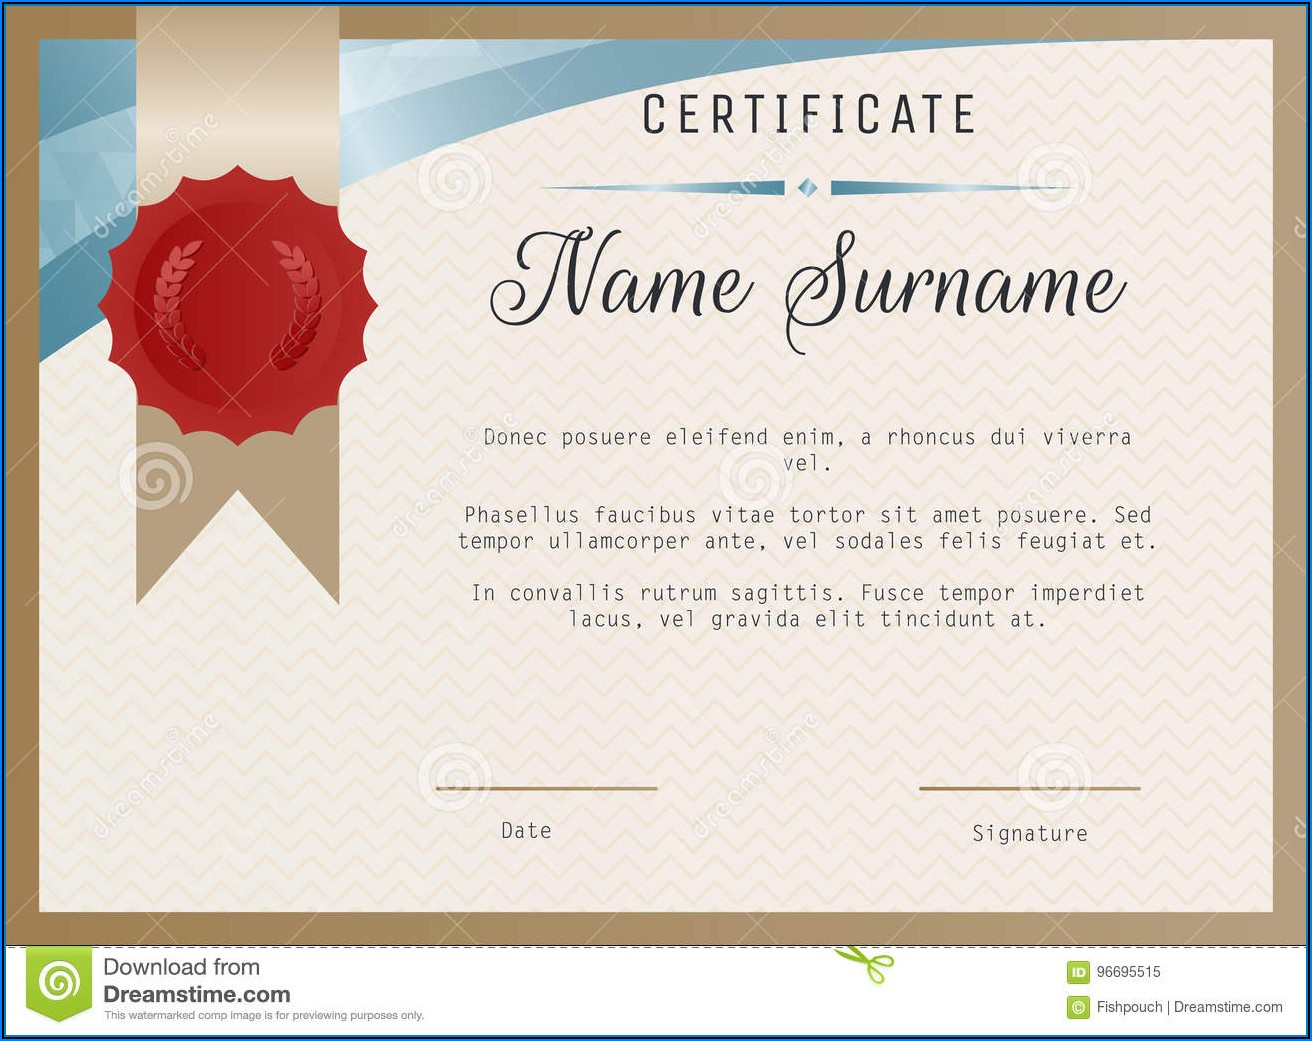 Certificate Seal Template Vector